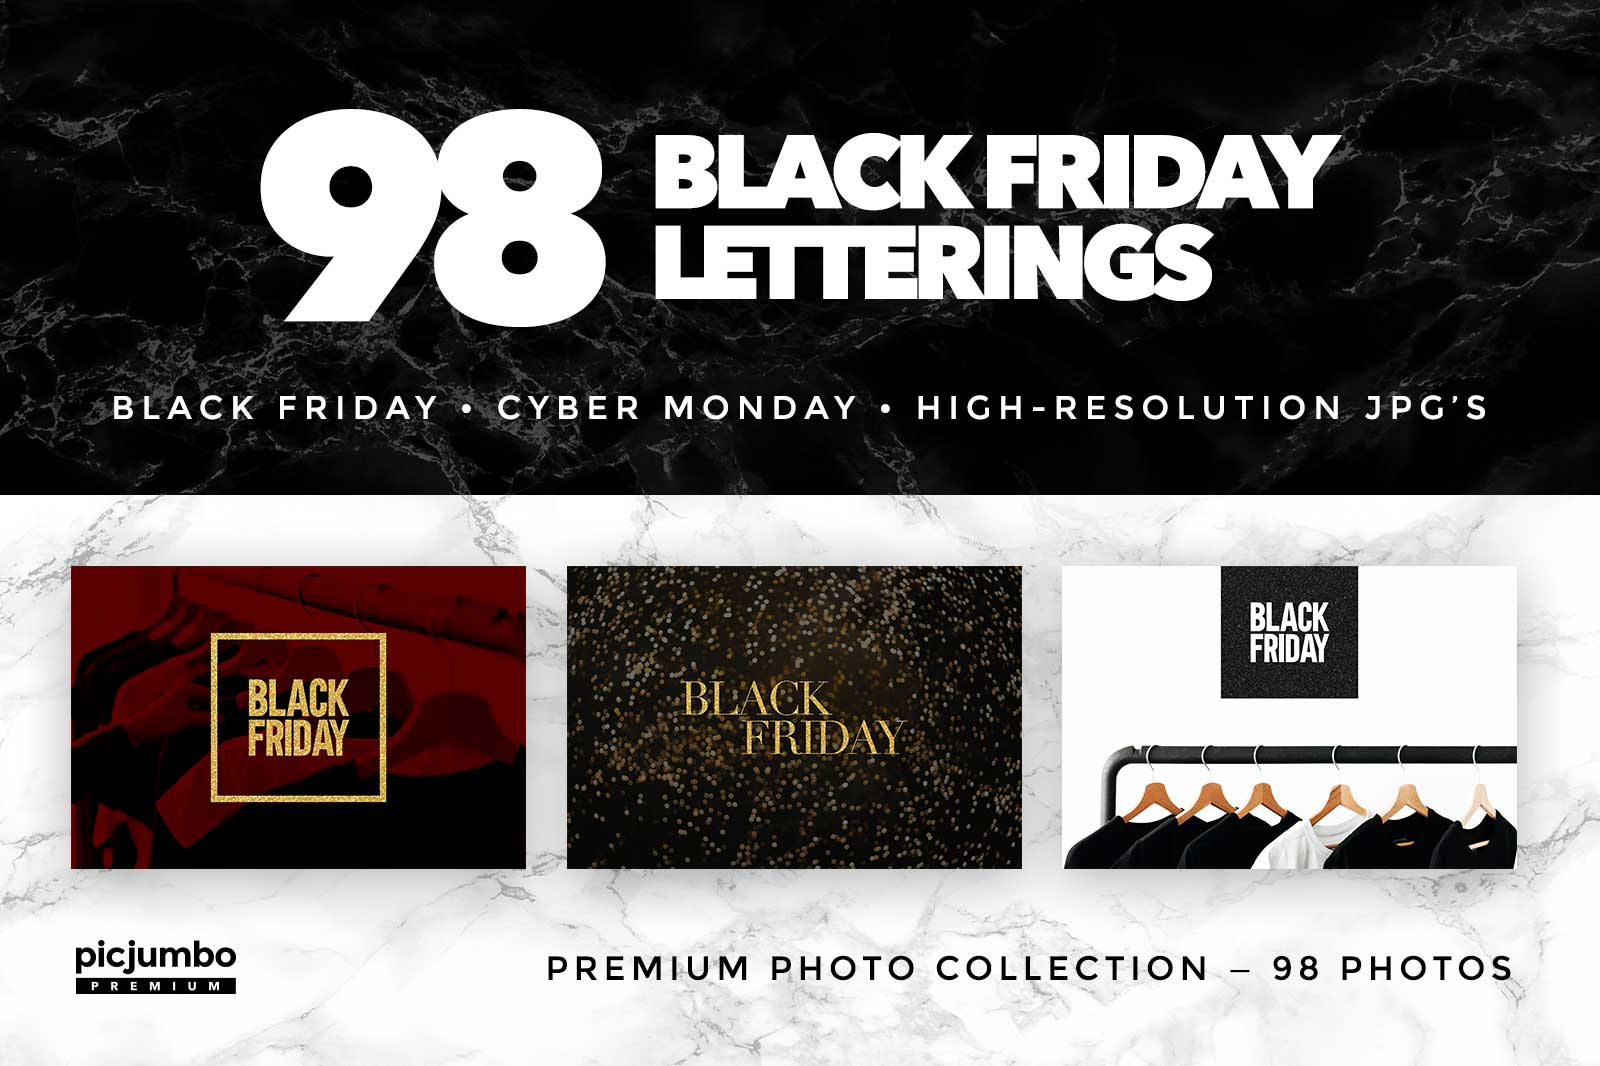 Black Friday Letterings